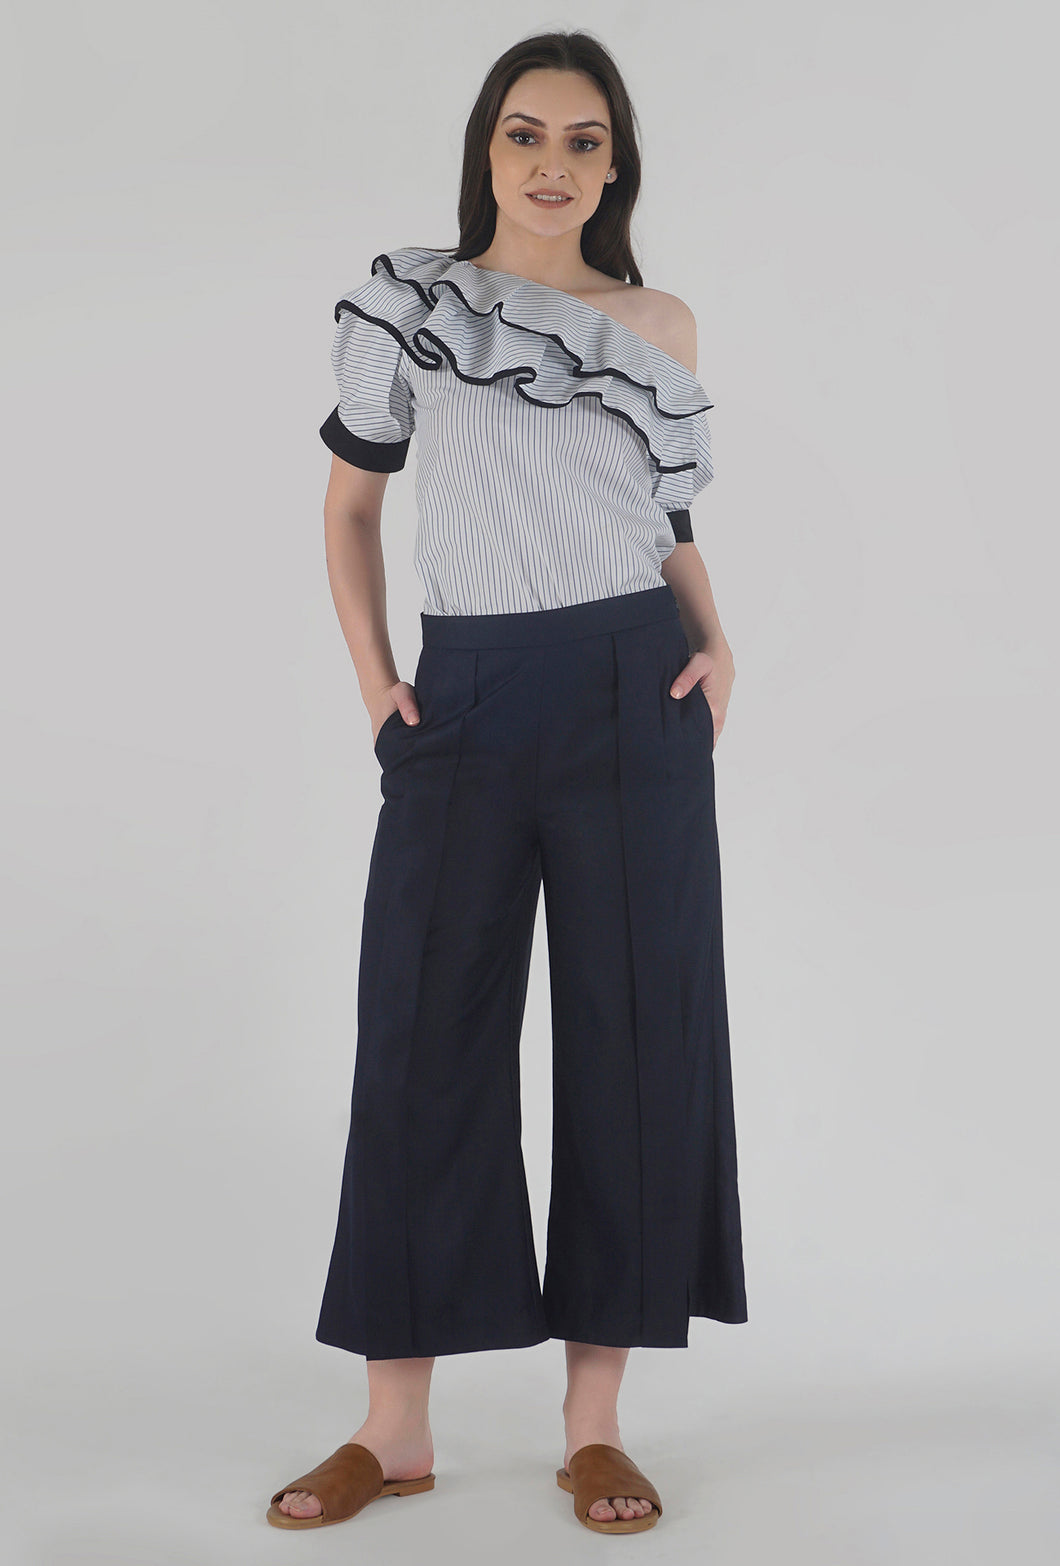 Navy Pleated Front Slit Culotte Pants style